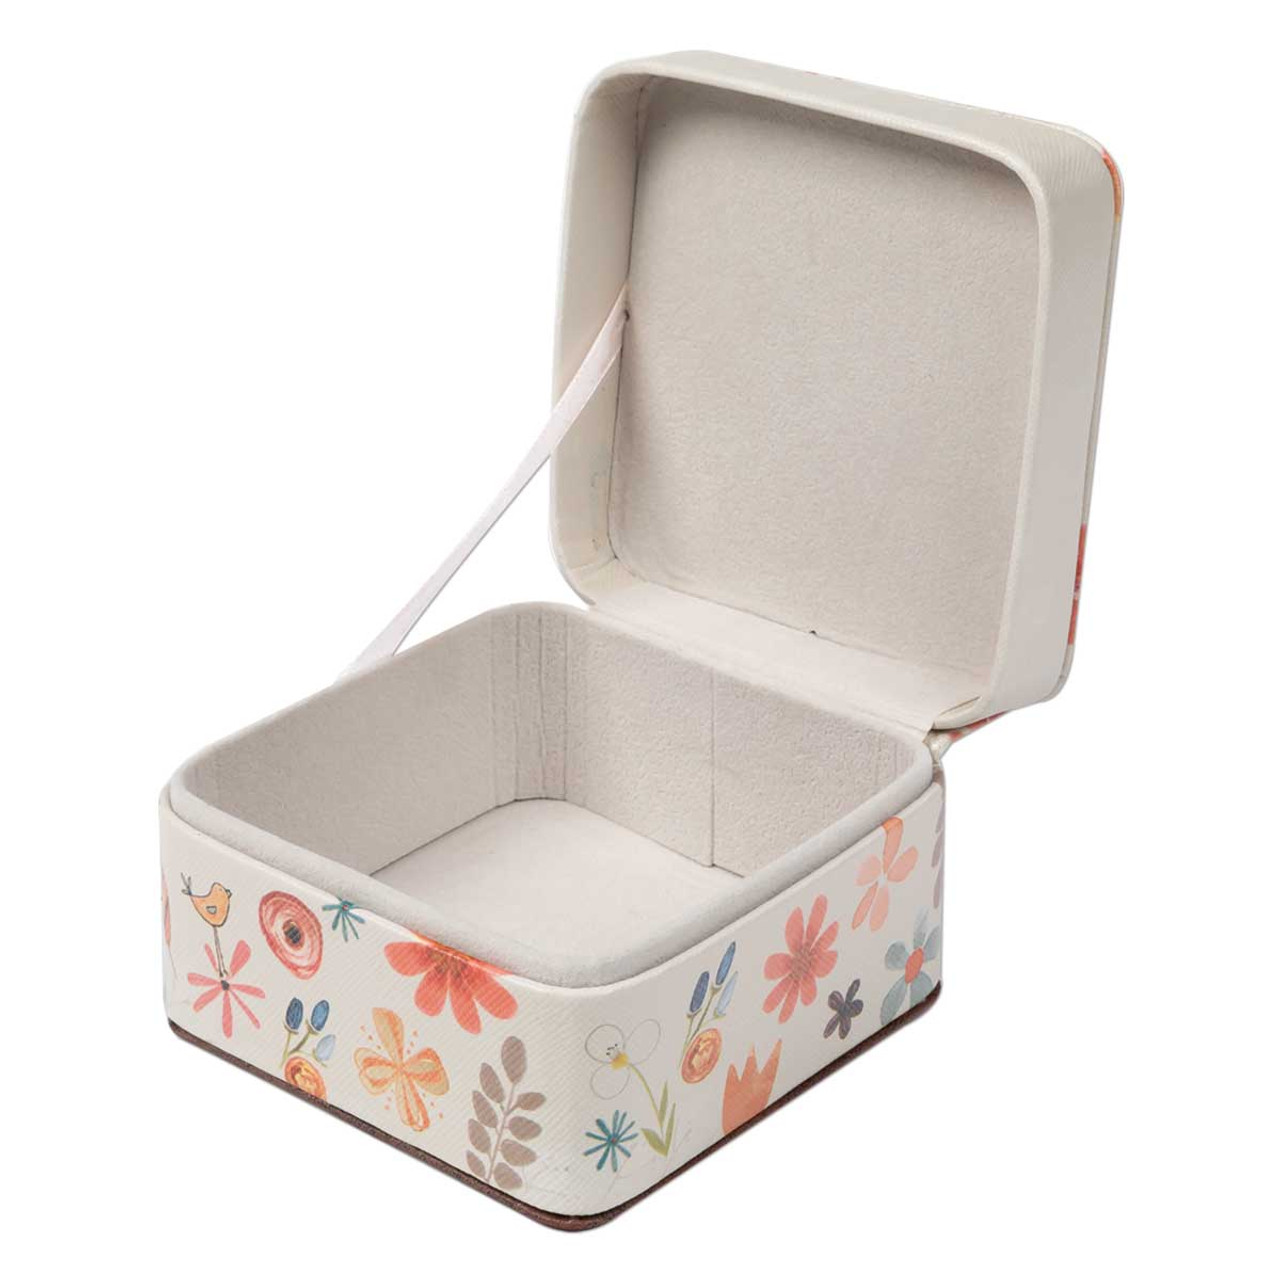 keep life simple jewelry box brownlow gifts